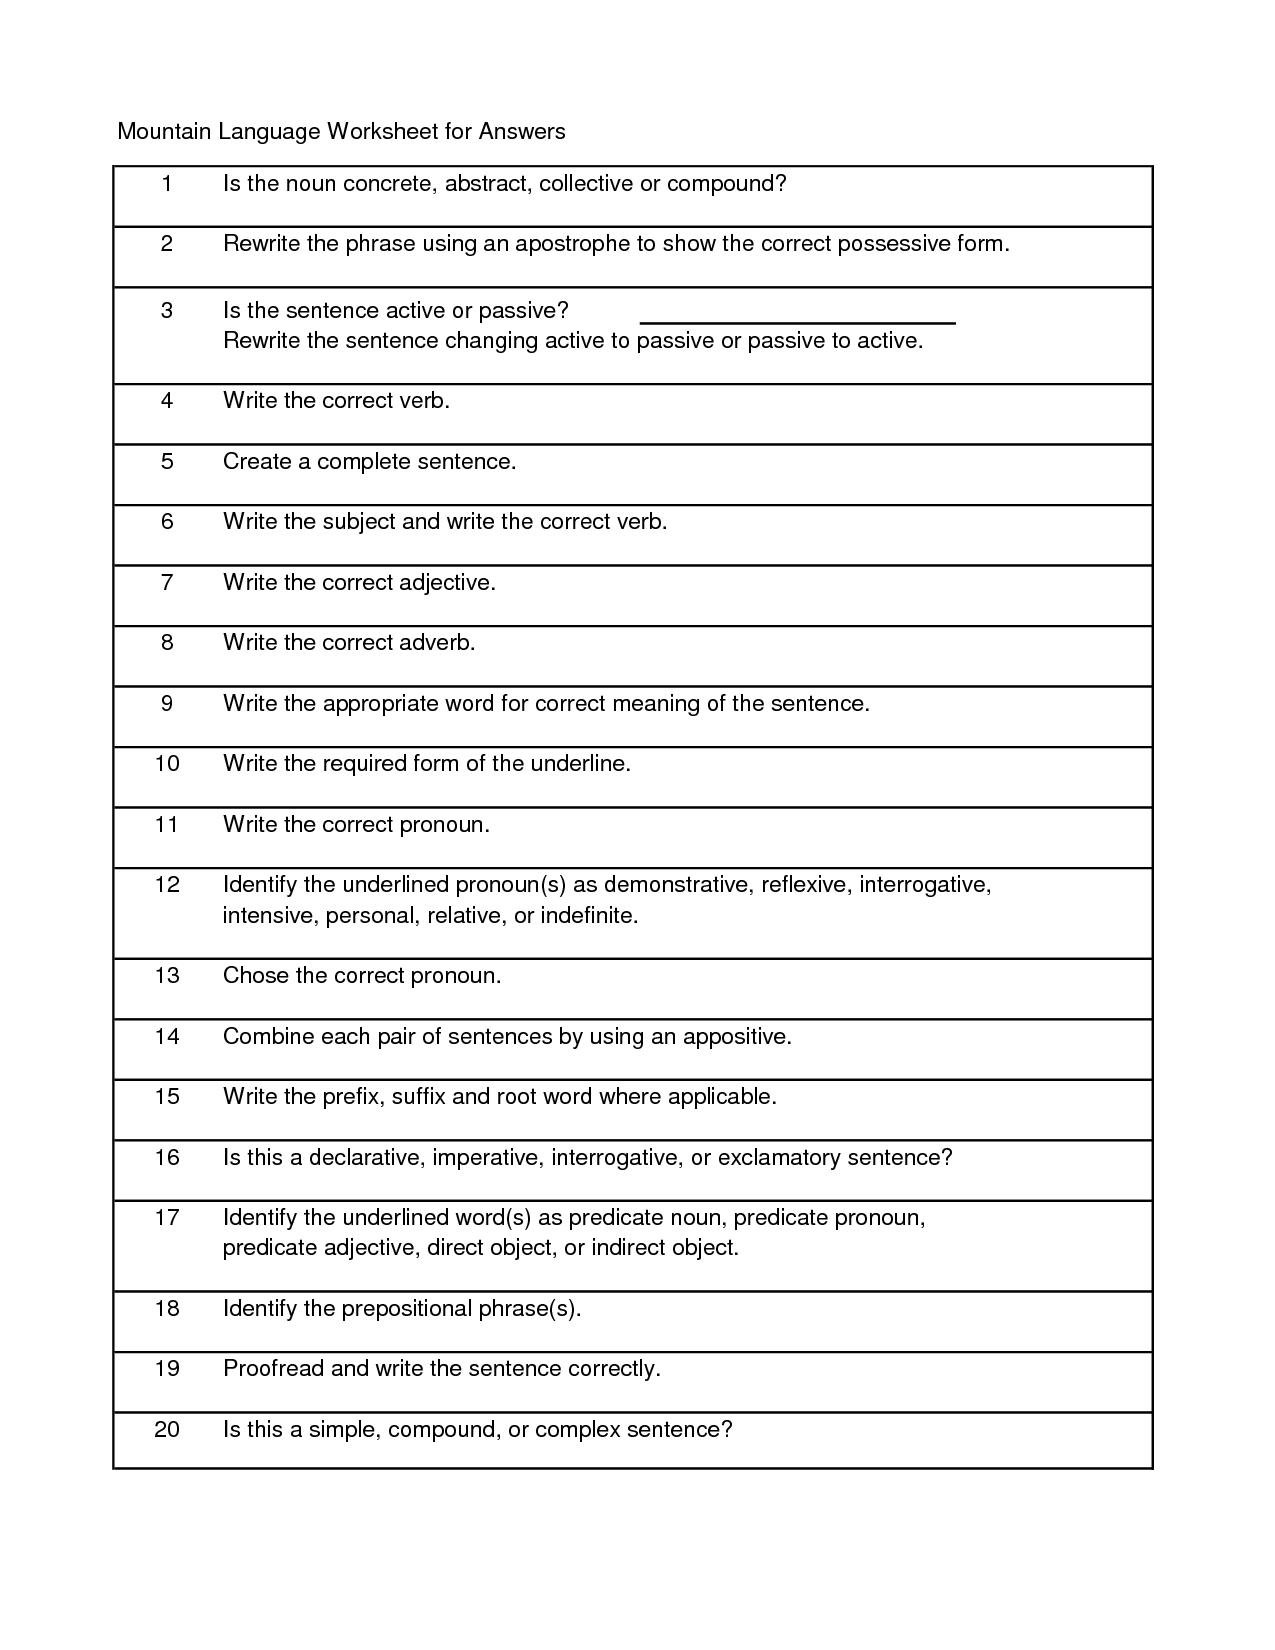 Simple Compound Complex Sentences Worksheet